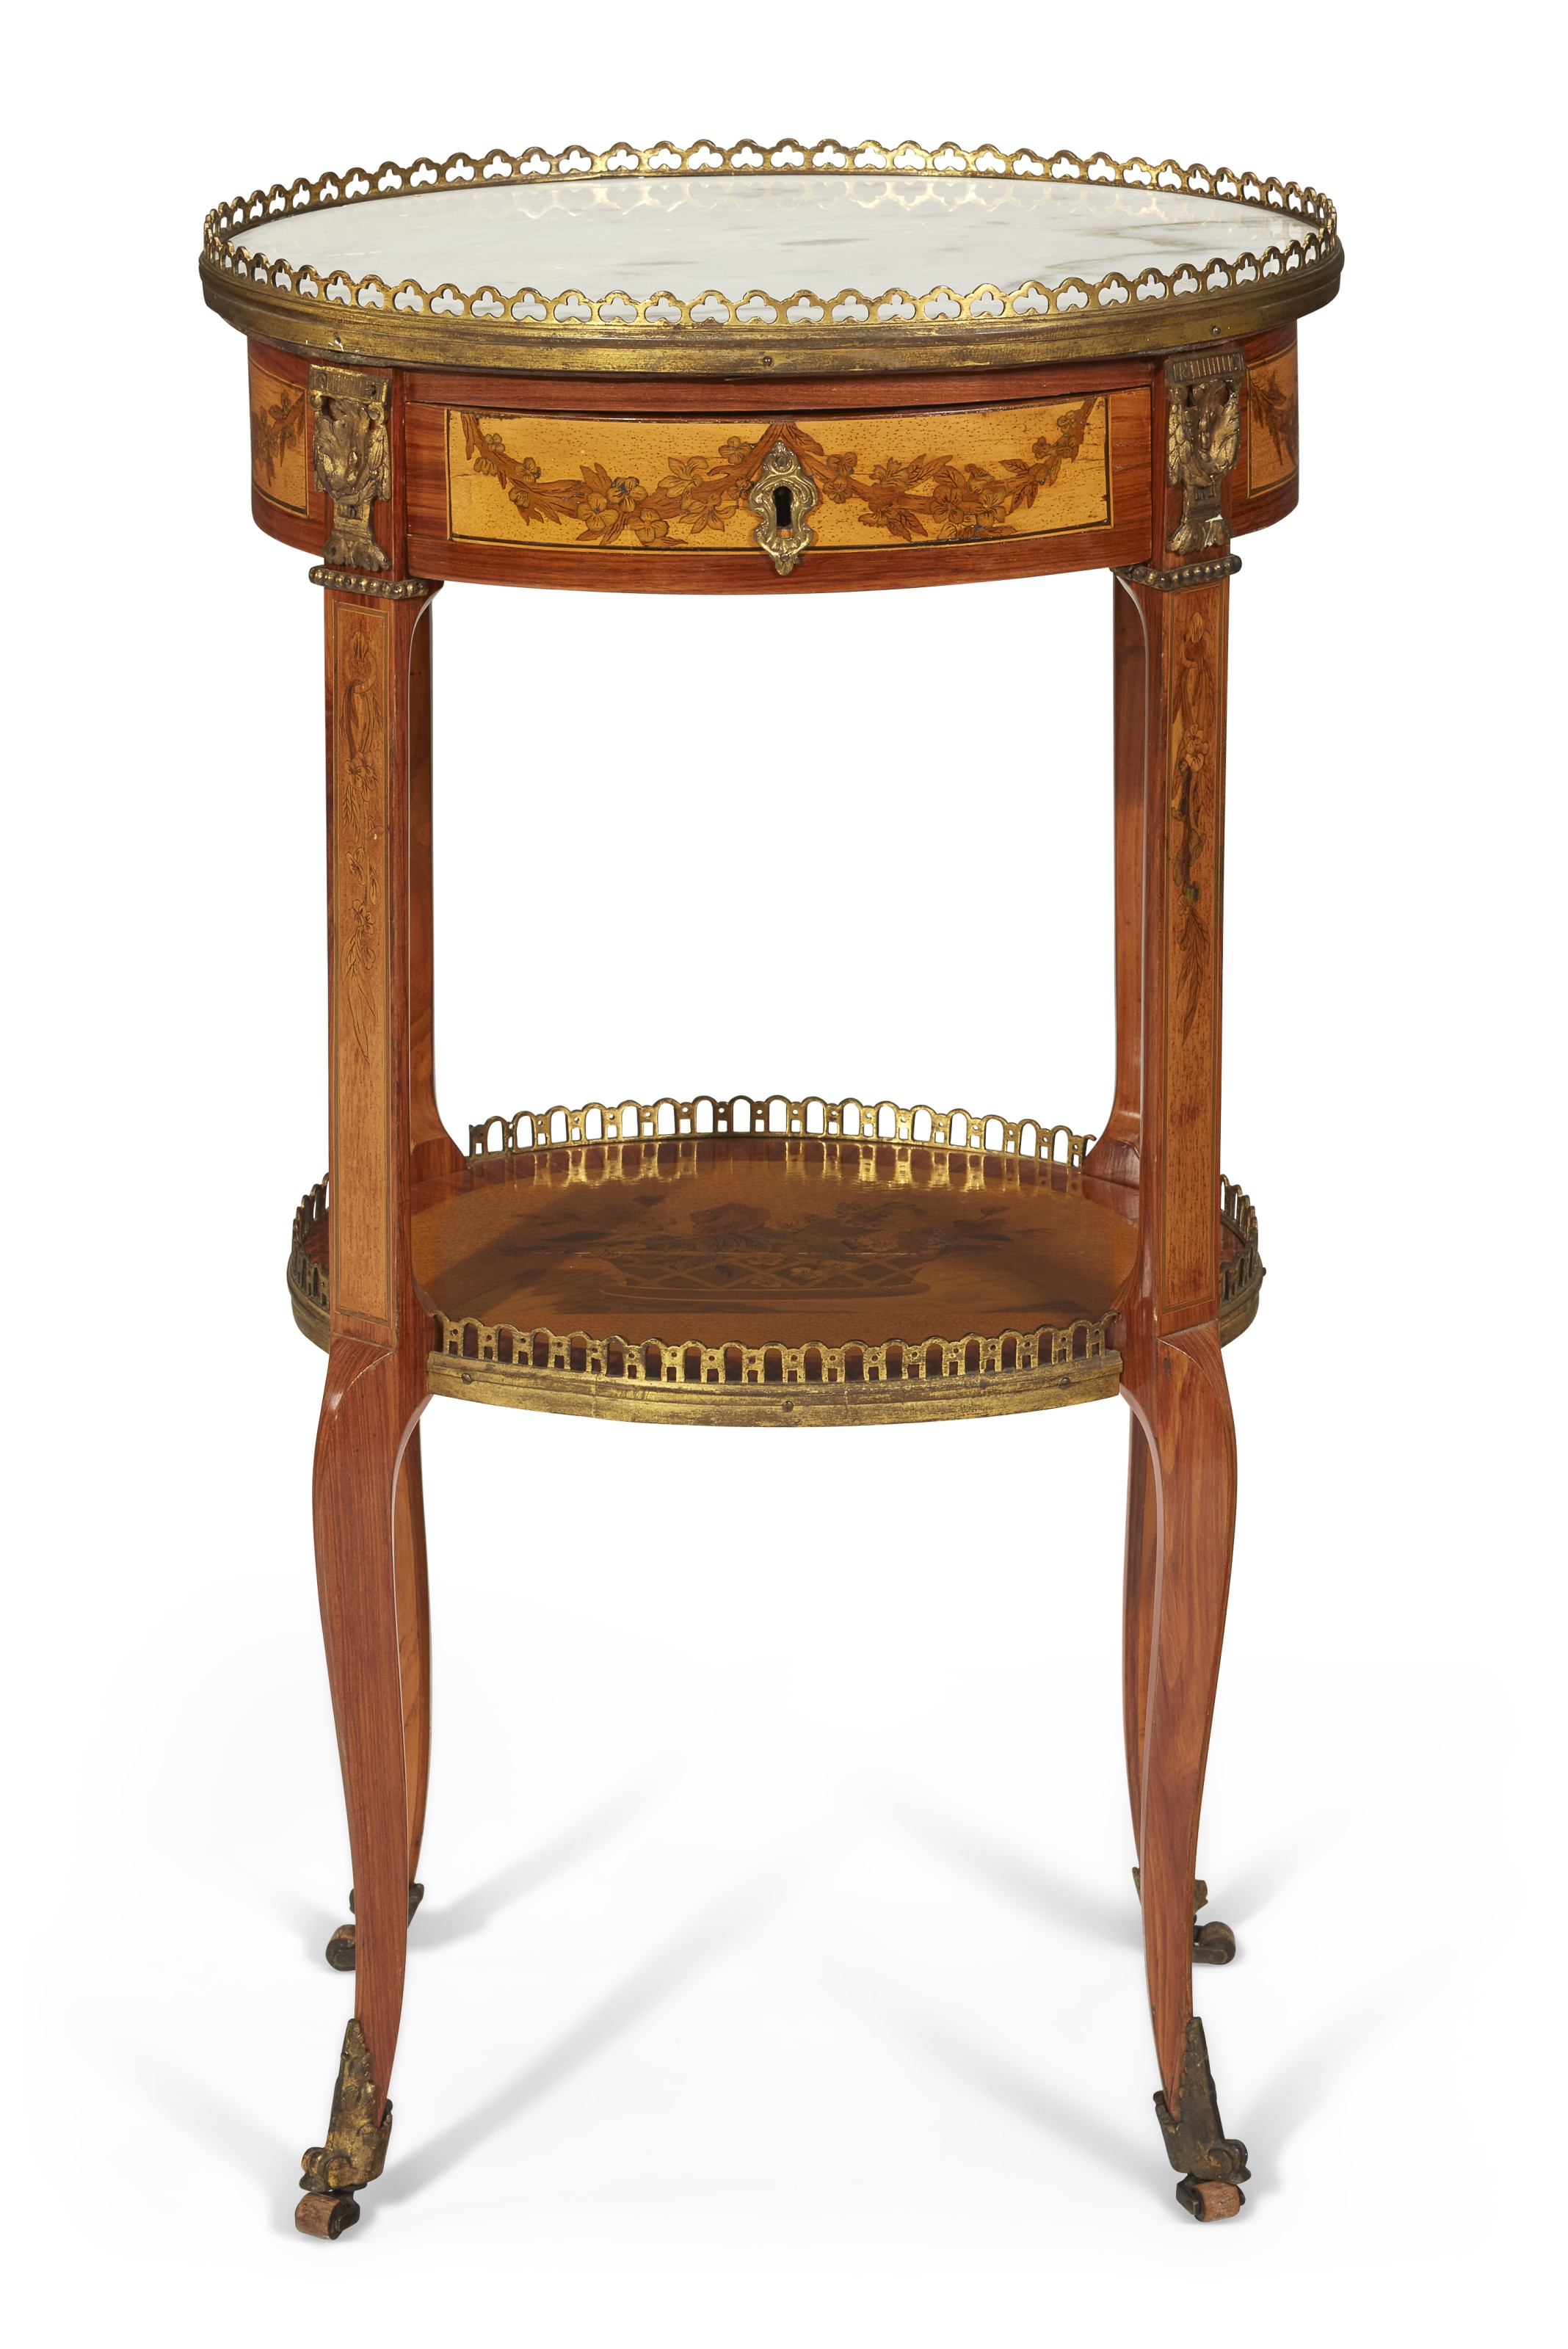 A late Louis XV ormolu-mounted tulipwood, fruitwood and marquetry table a écrire, by Charles Topino, c. 1770. 29  in (74  cm) high, 16½  in (42  cm) wide, 14½  in (37  cm) deep. Estimate $7,000-10,000. Offered in The Collector English & European Furniture, Ceramics, Silver & Works of Art on 5-19 October 2021 at Christie's Online